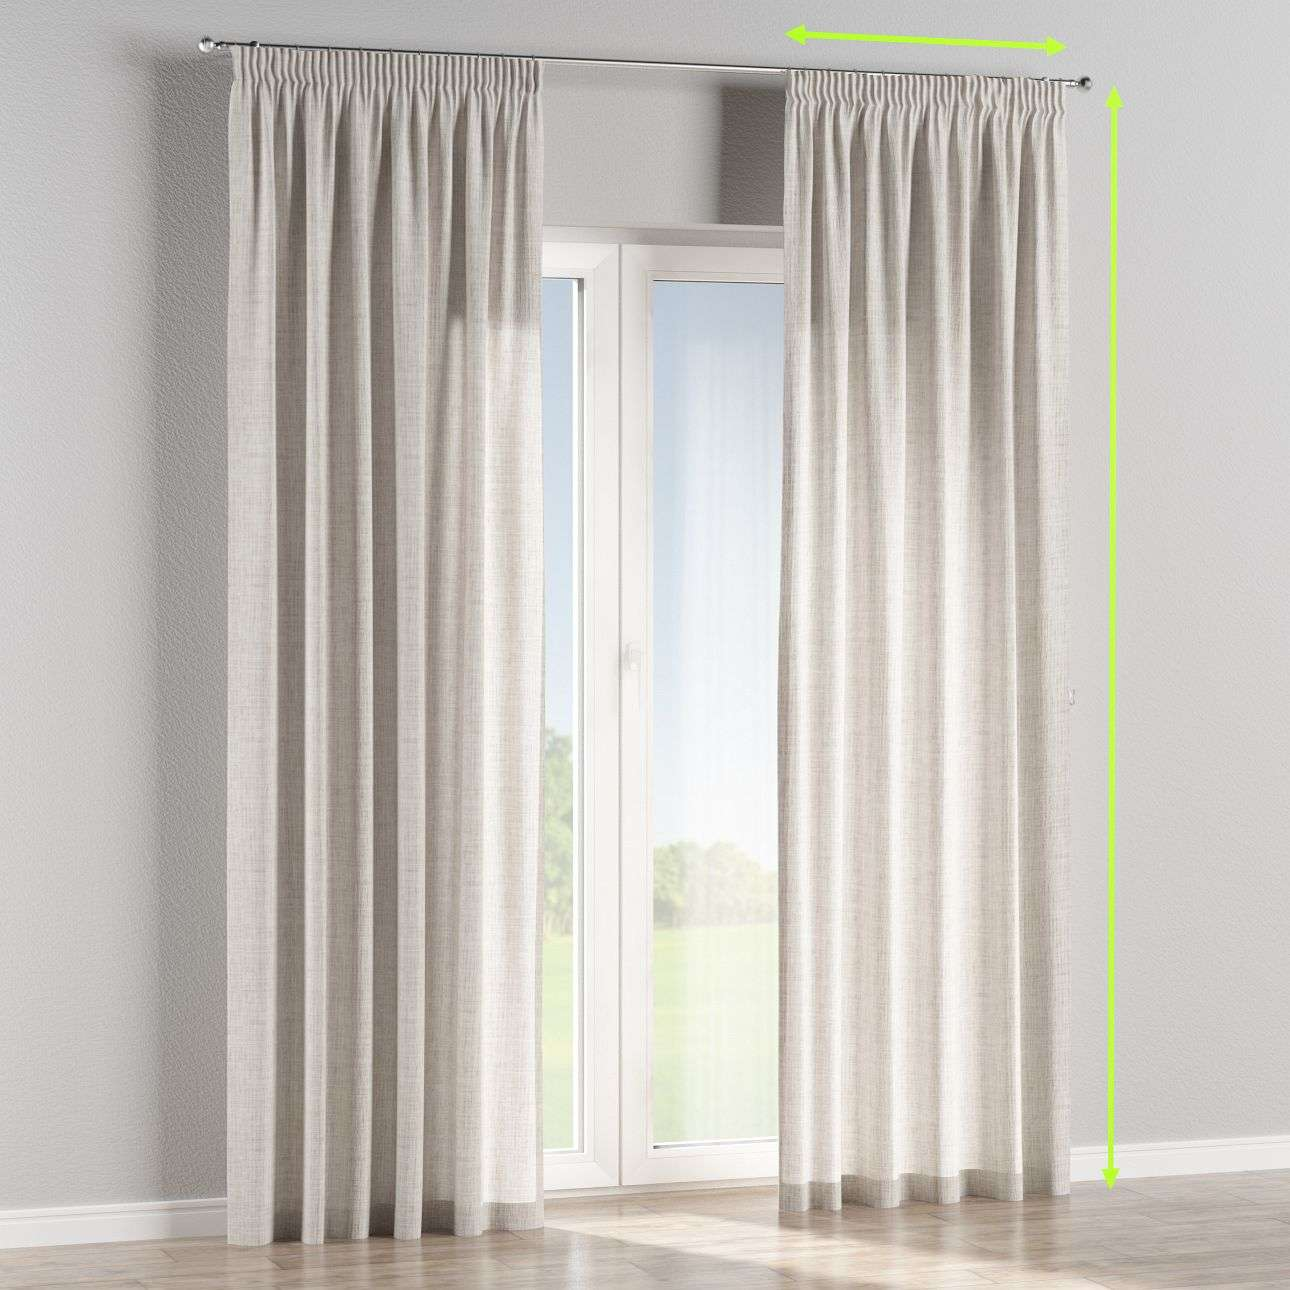 Pencil pleat curtains in collection Aquarelle, fabric: 140-75